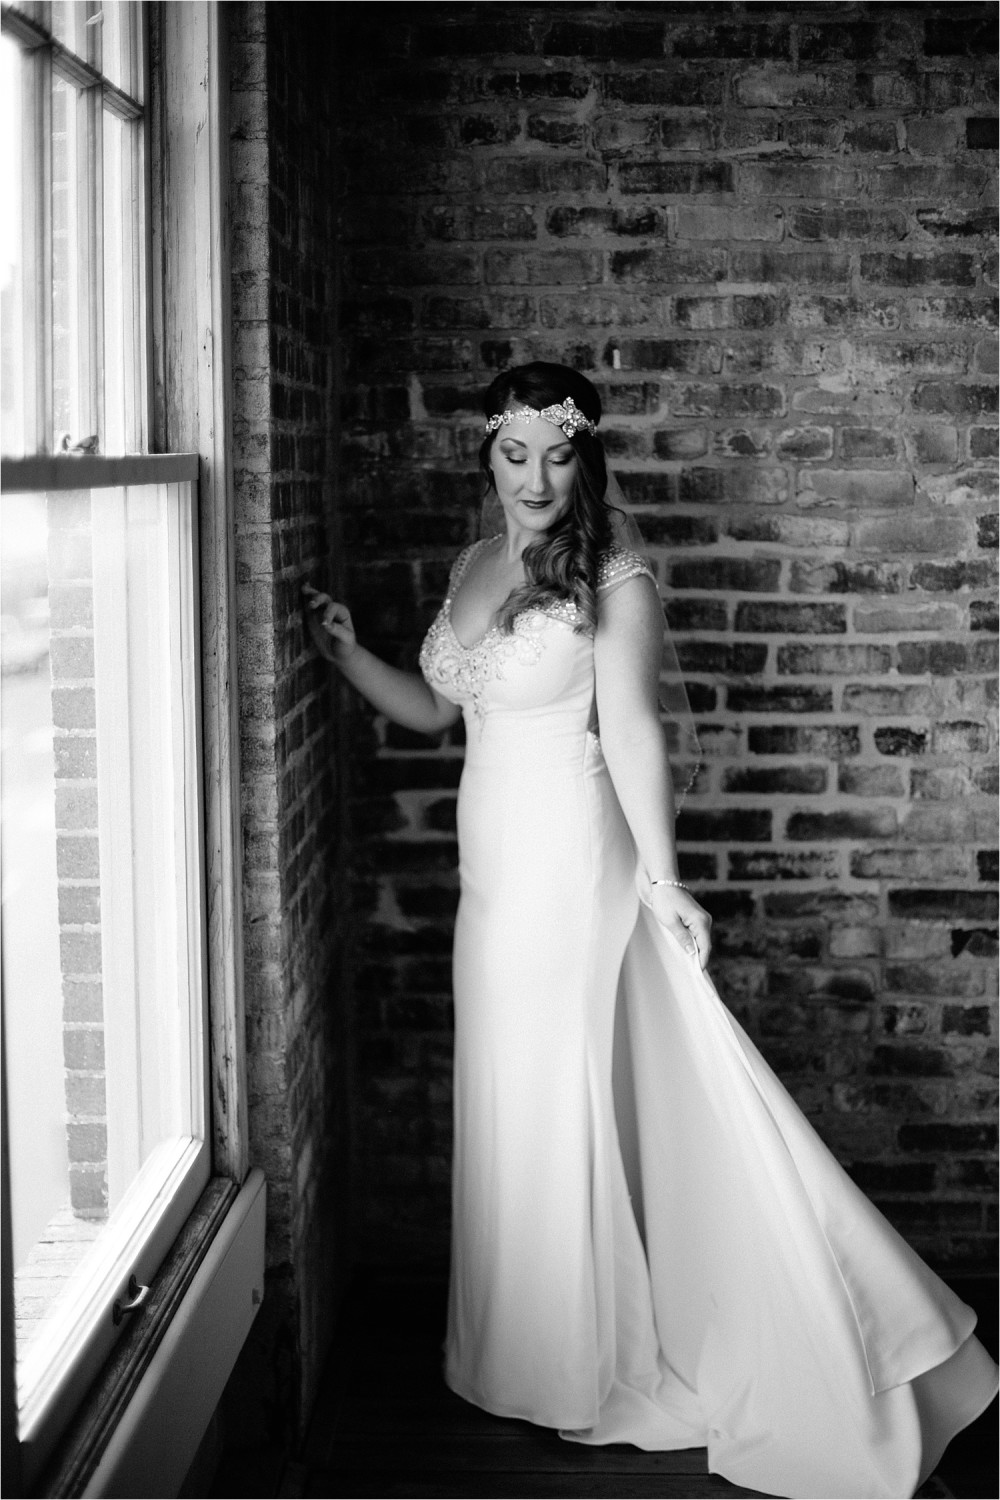 whittney-drew-__-an-intimate-wine-and-navy-wedding-in-an-industrial-venue-at-loft-123-in-paris-tx-by-north-texas-wedding-photographer-rachel-meagan-photography-_-028